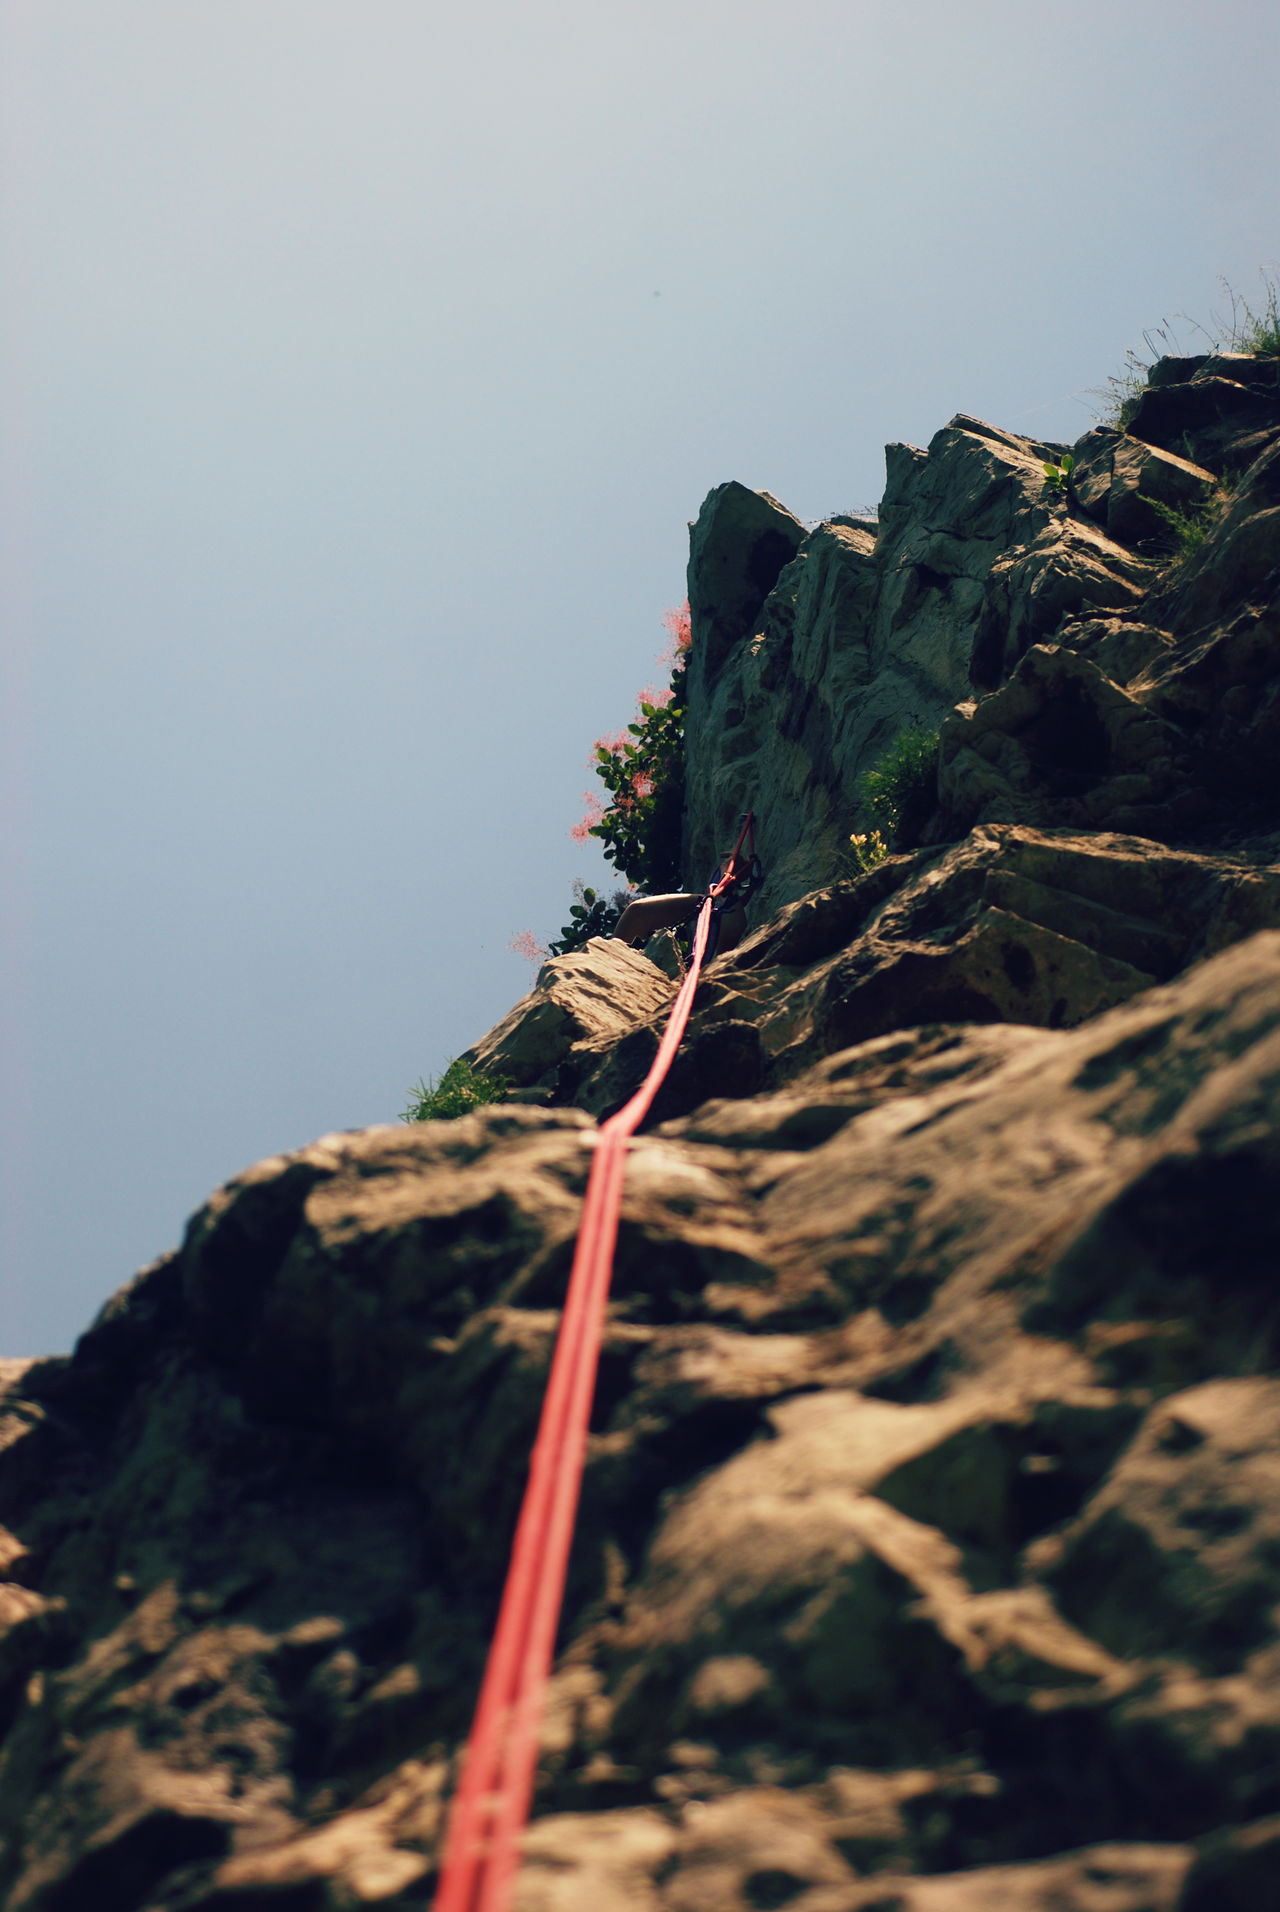 Low angle view - abseiling from a steep rock Abseiling Activity Adrenaline Adventure Altitude Belay Cliff Climber Climbing Descending Extreme Sports Lifestyle Low Angle View Mountain Mountain Climbing Mountaineering Rappel Rappelling Rock Climbing Rocks Rope Scenics Sky Steep Vertical